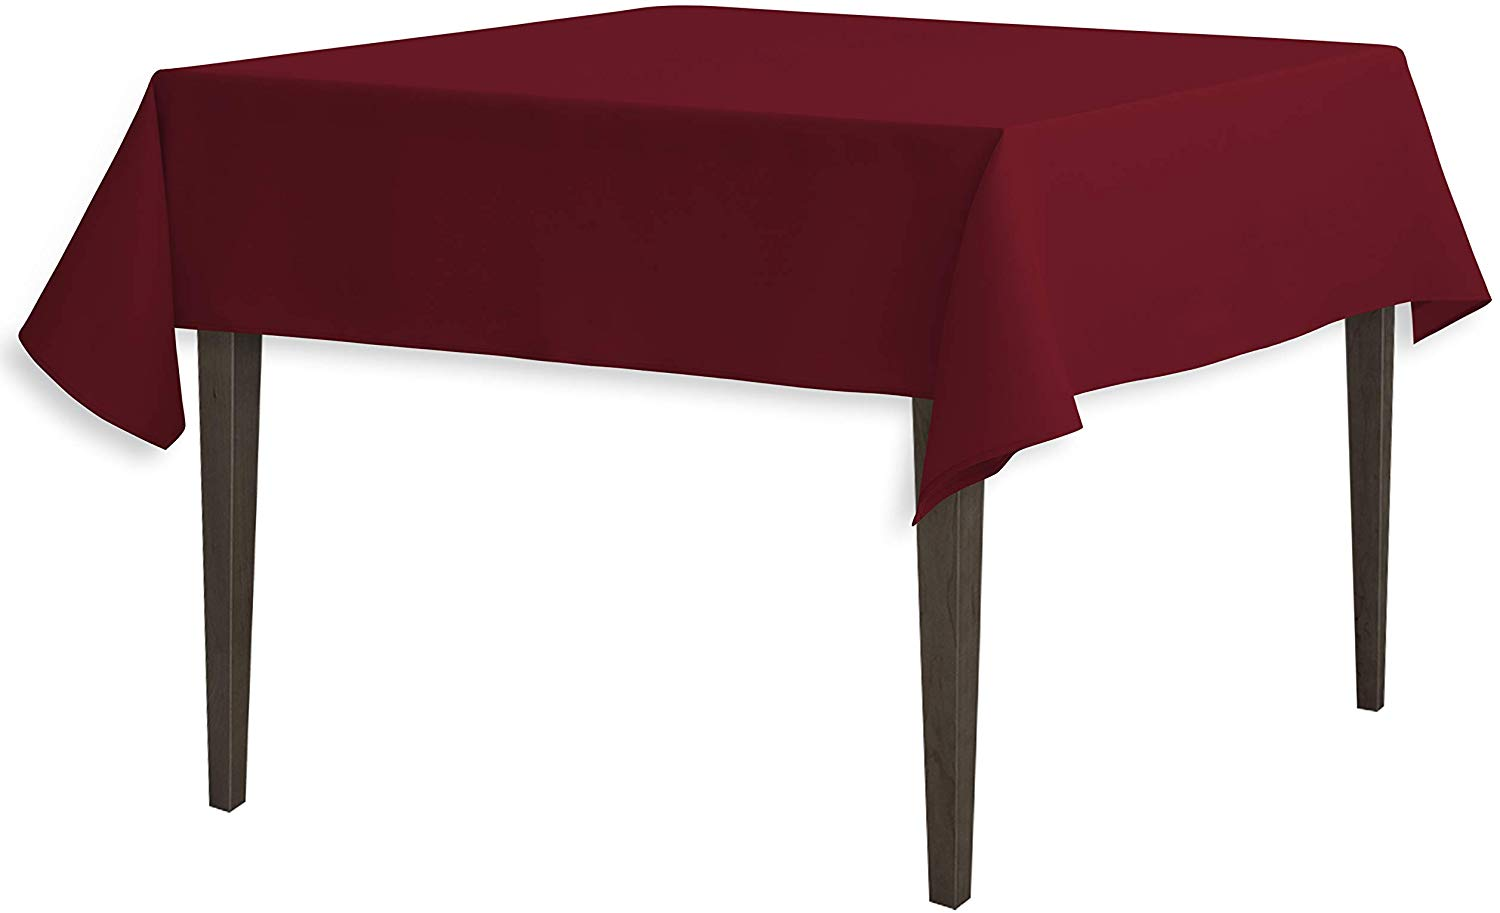 Qty 11 - 54-Inch Square Polyester Tablecloth Burgundy